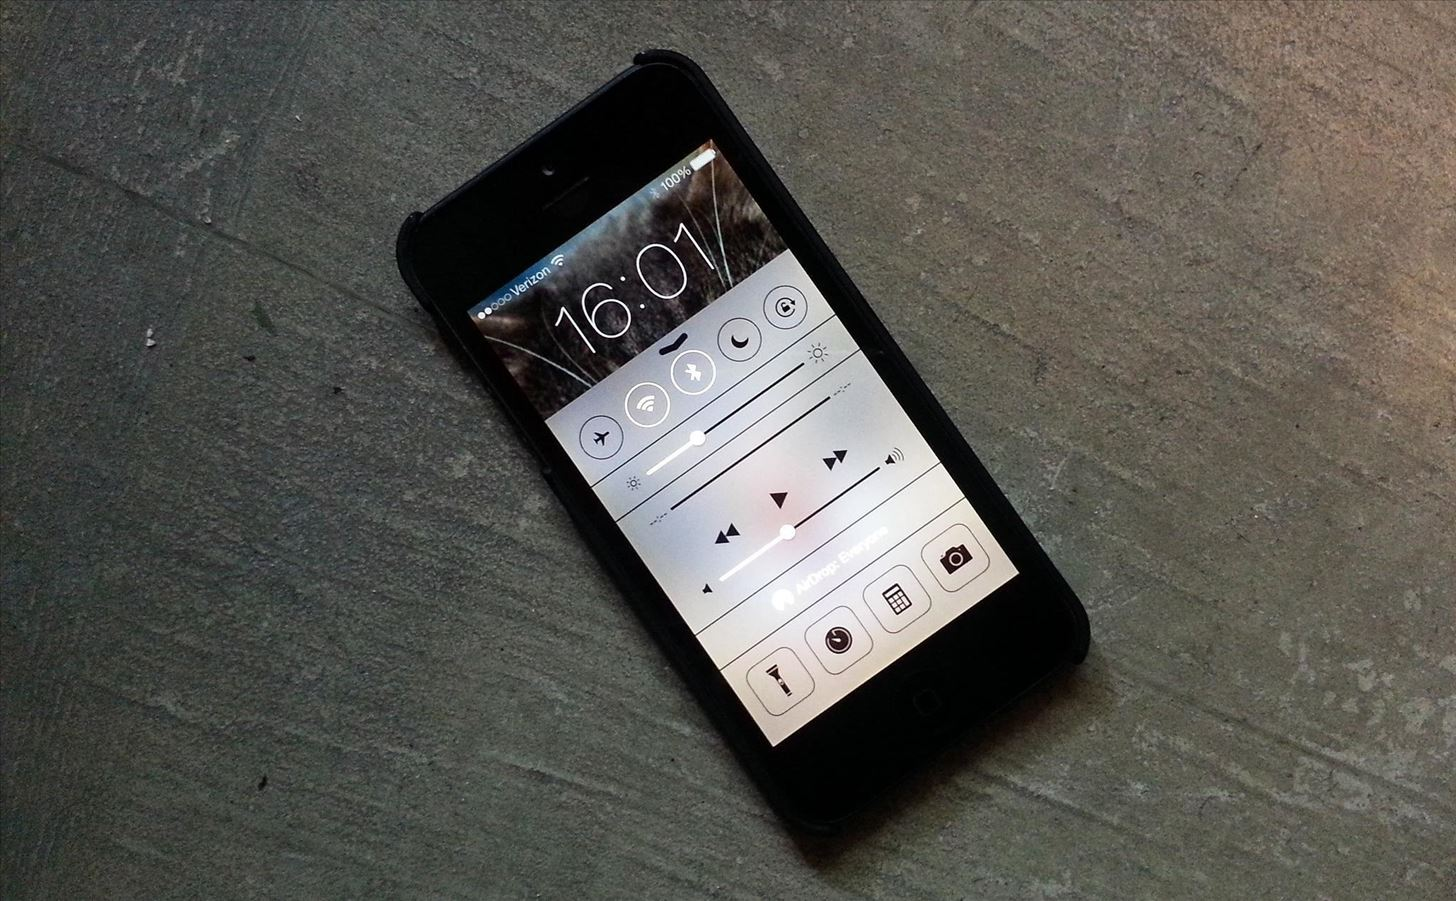 The 15 Most Annoying Things About iOS 7 for iPhone